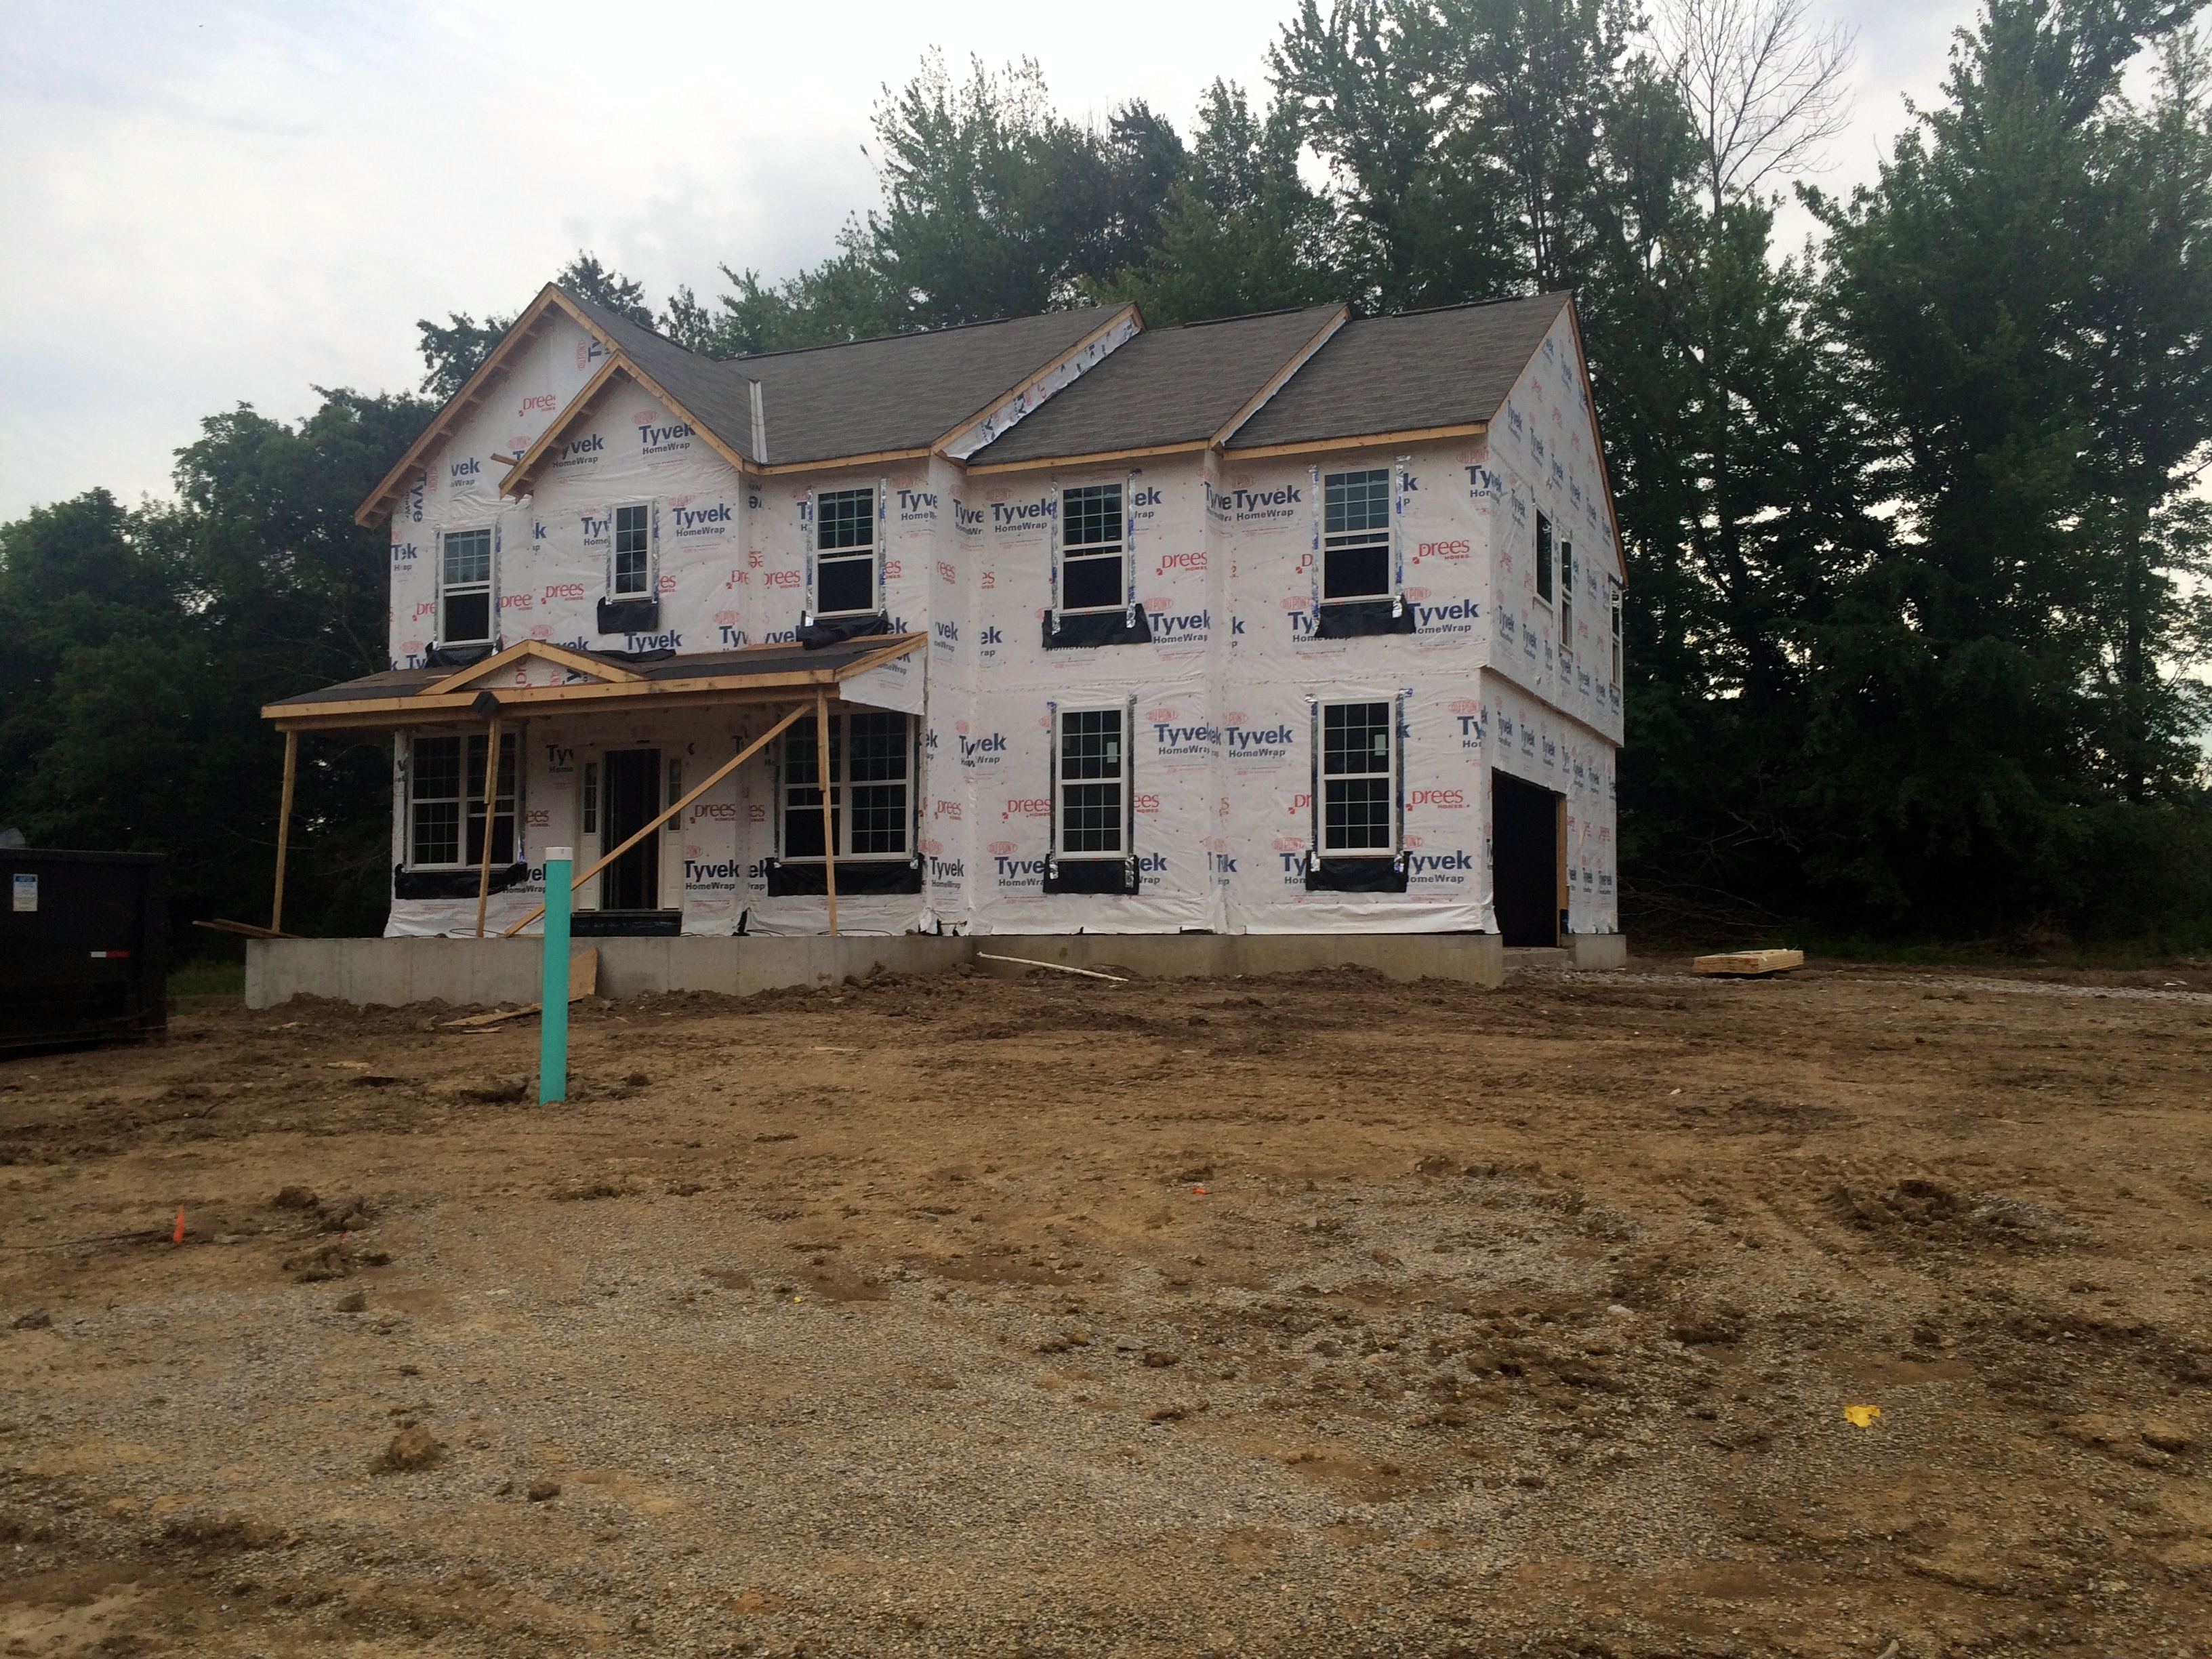 drees-homes-pre-drywall-exterior